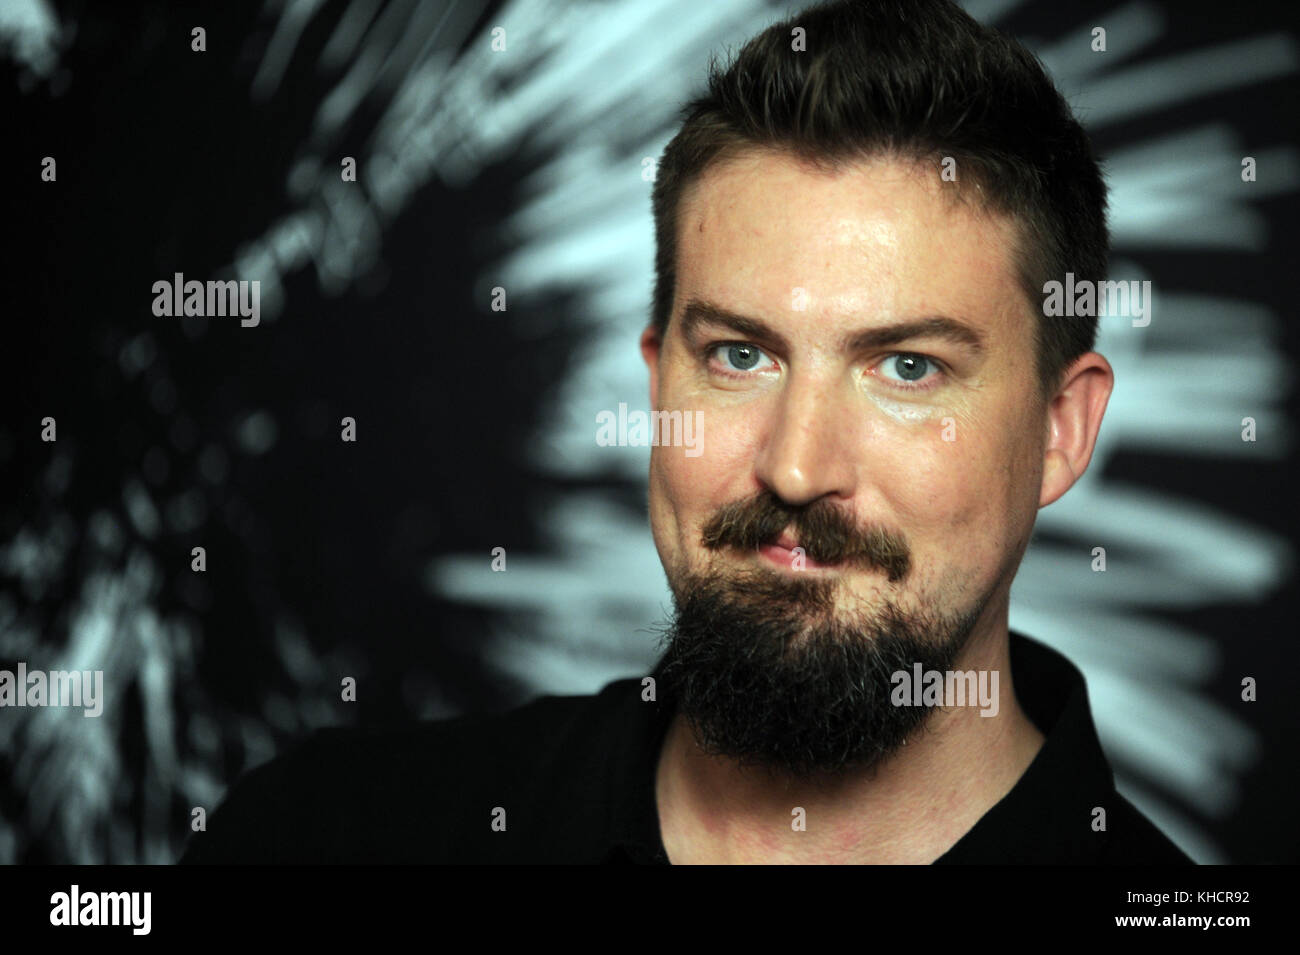 NEW YORK, NY - AUGUST 17: Adam Wingard attends the 'Death